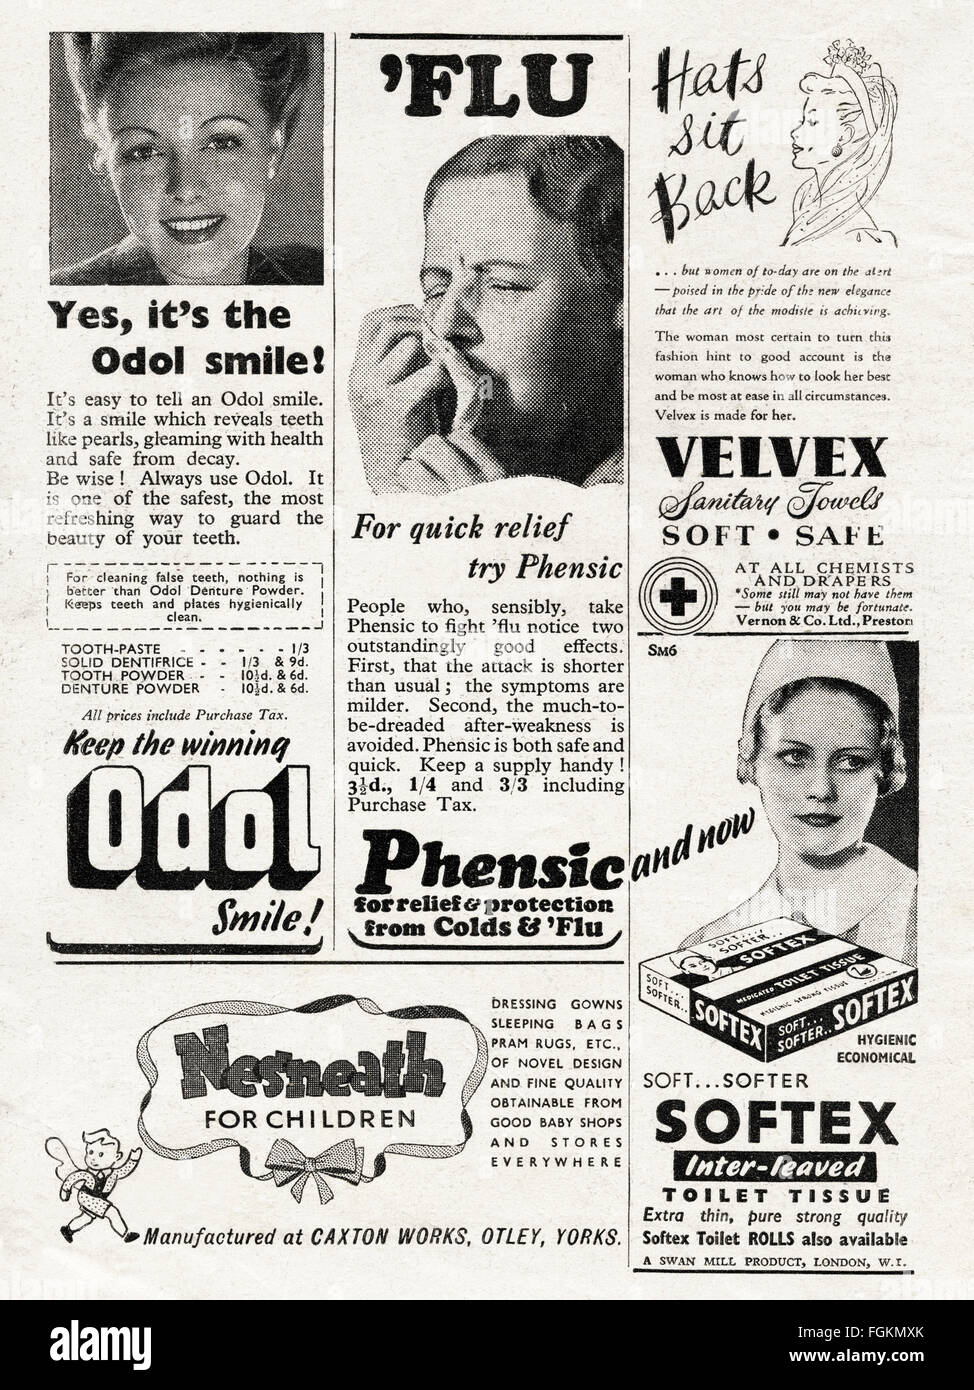 original vintage adverts from 1940s advertisements dated 1947 original vintage adverts from 1940s advertisements dated 1947 advertising odol denture powder phensic for colds flu nesneath for children babies